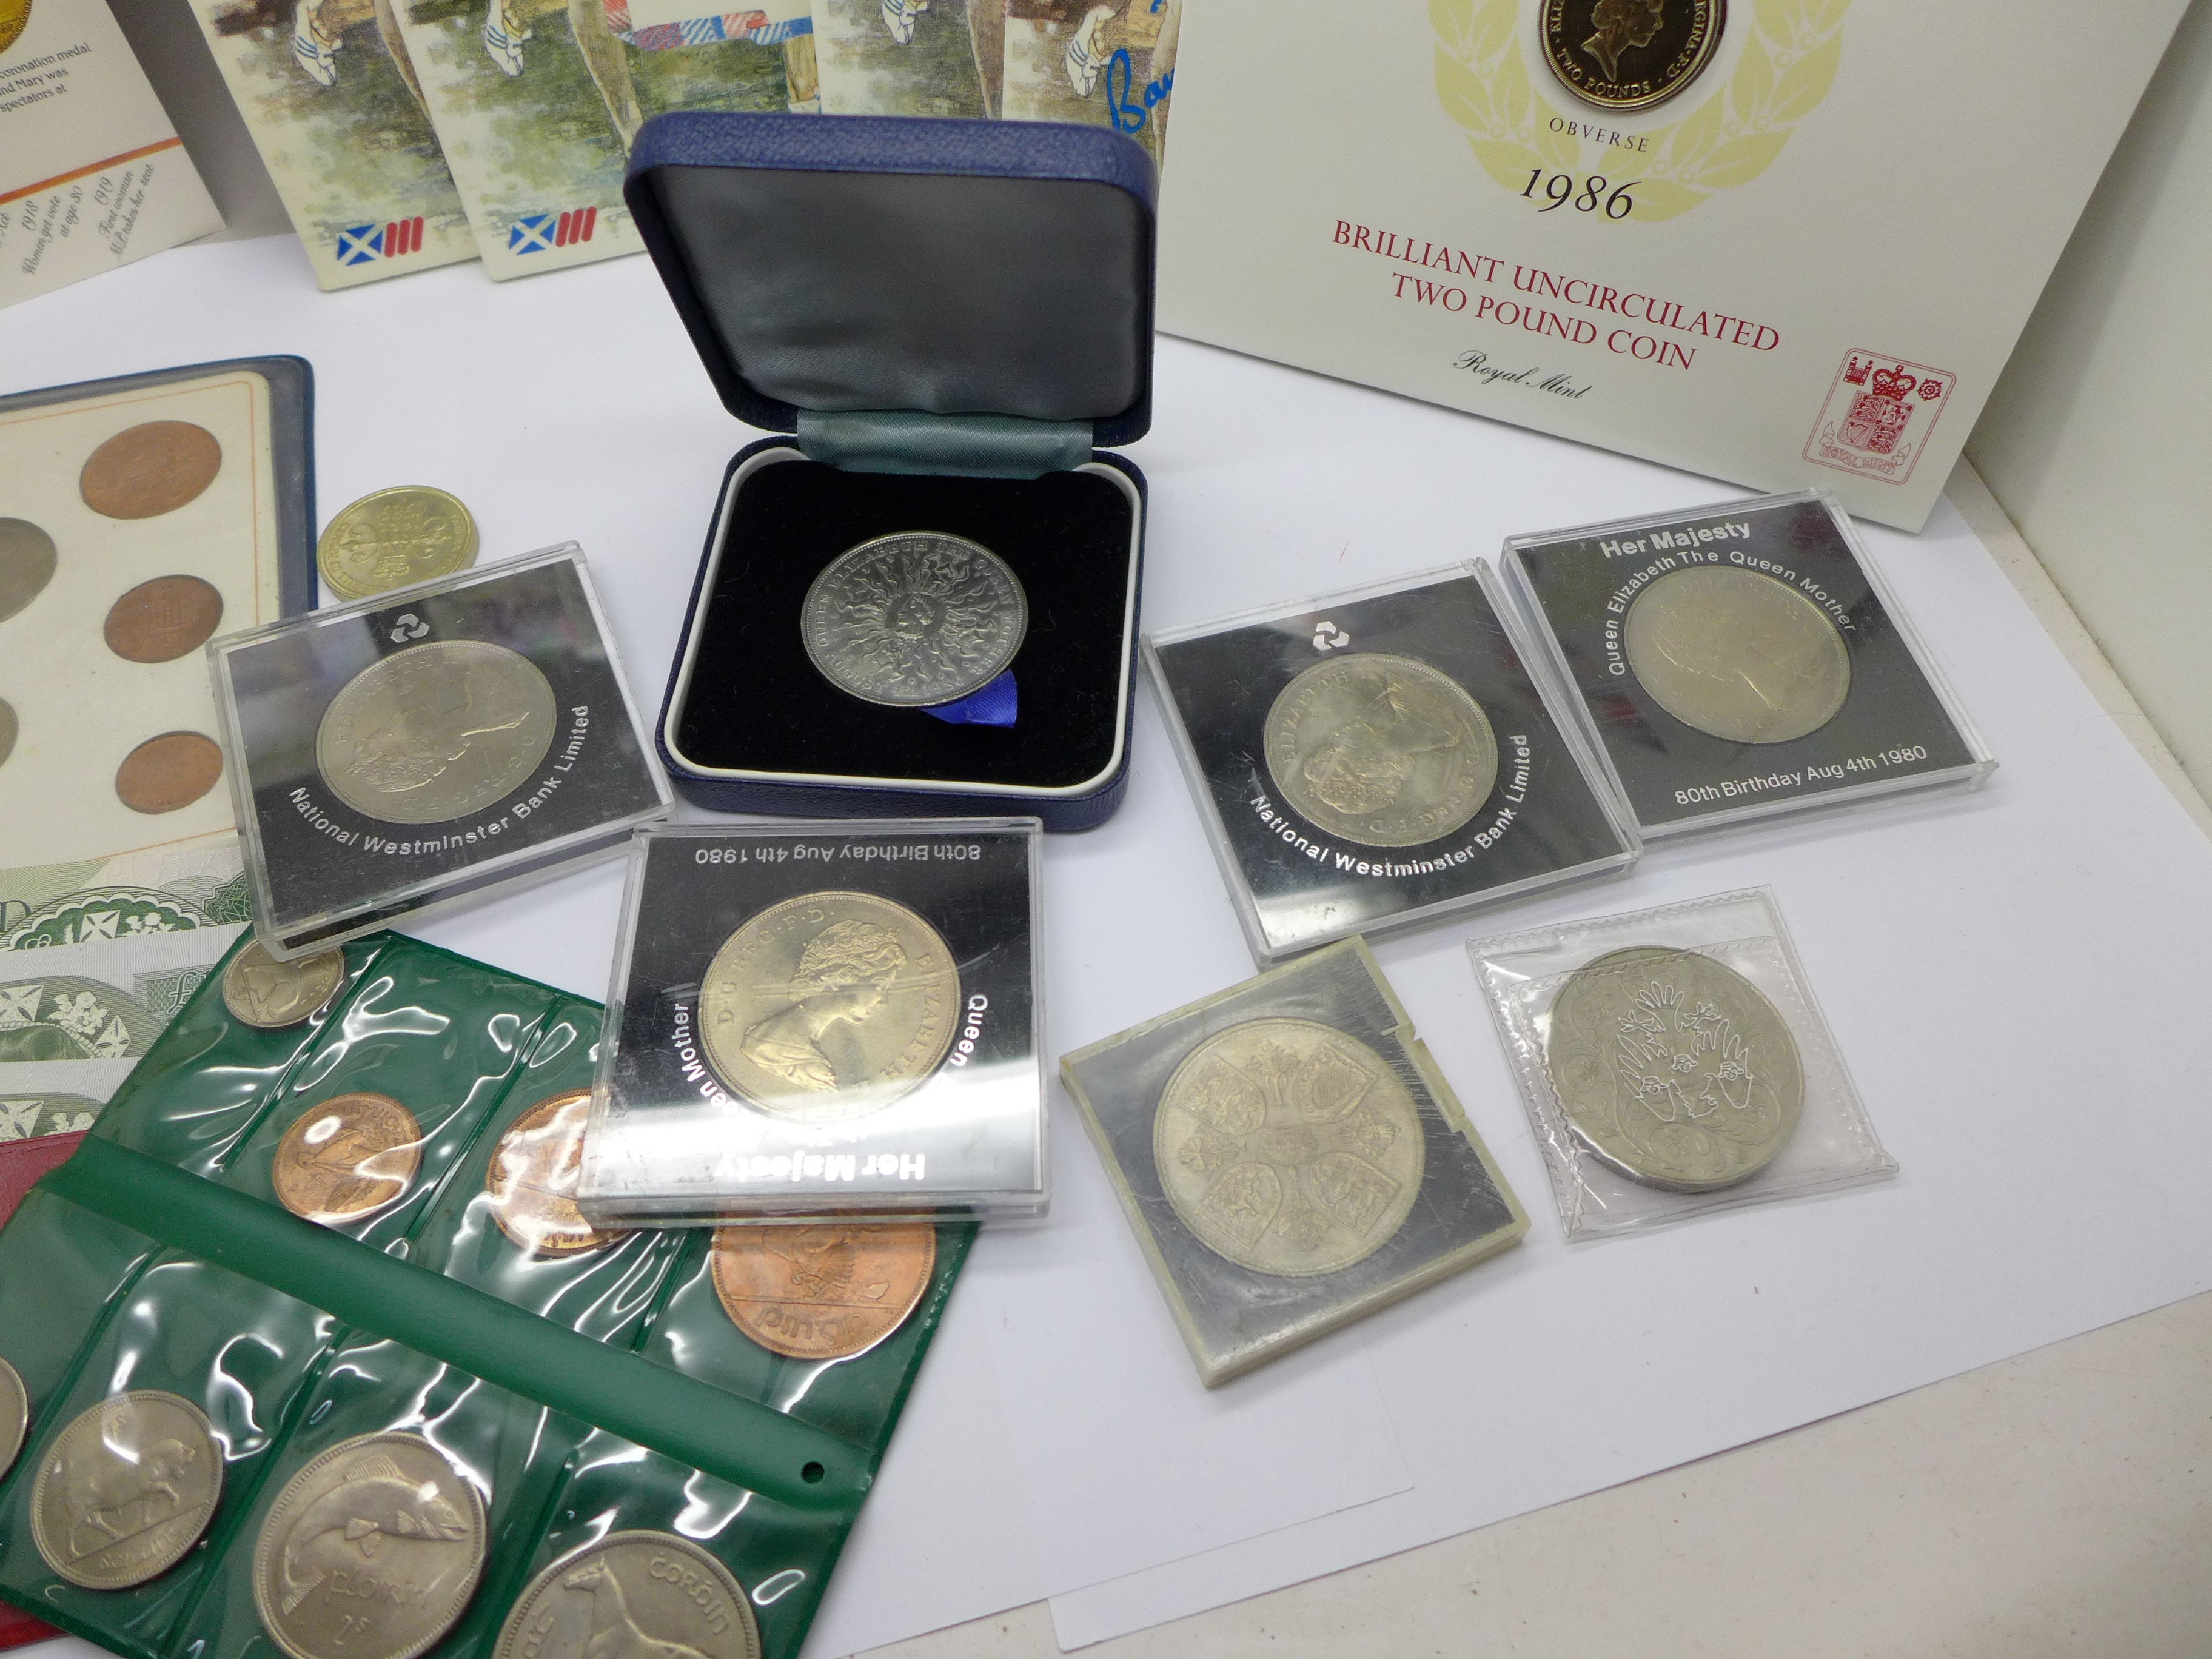 Four £2 commemorative coins from the 1986 Commonwealth Games, a collection of other commemorative - Image 5 of 5